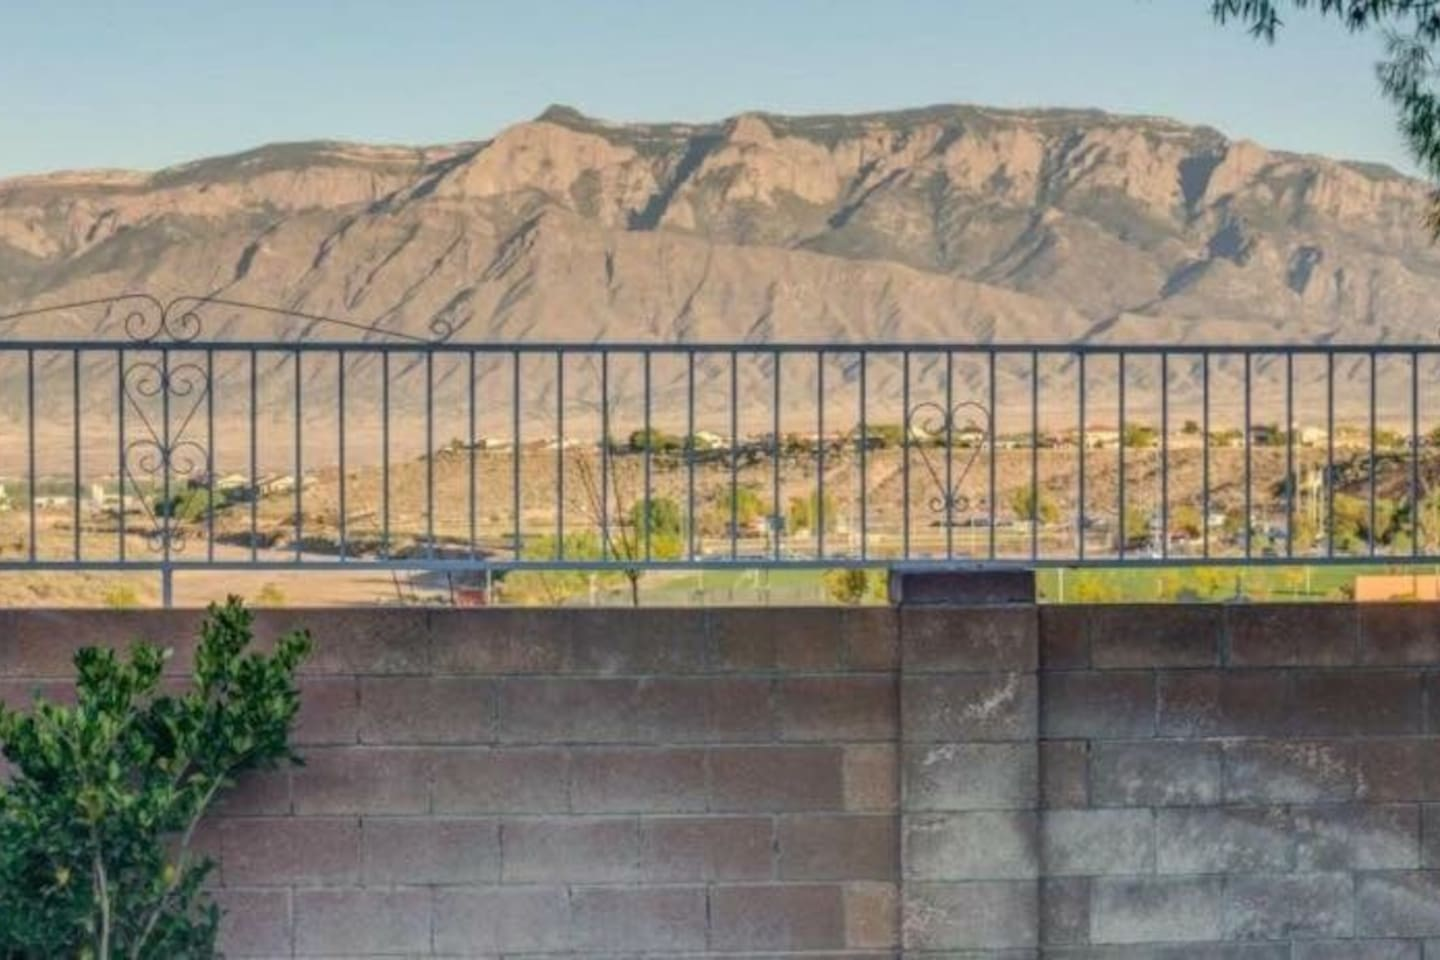 Unobstructed view of the Sandia Mountains